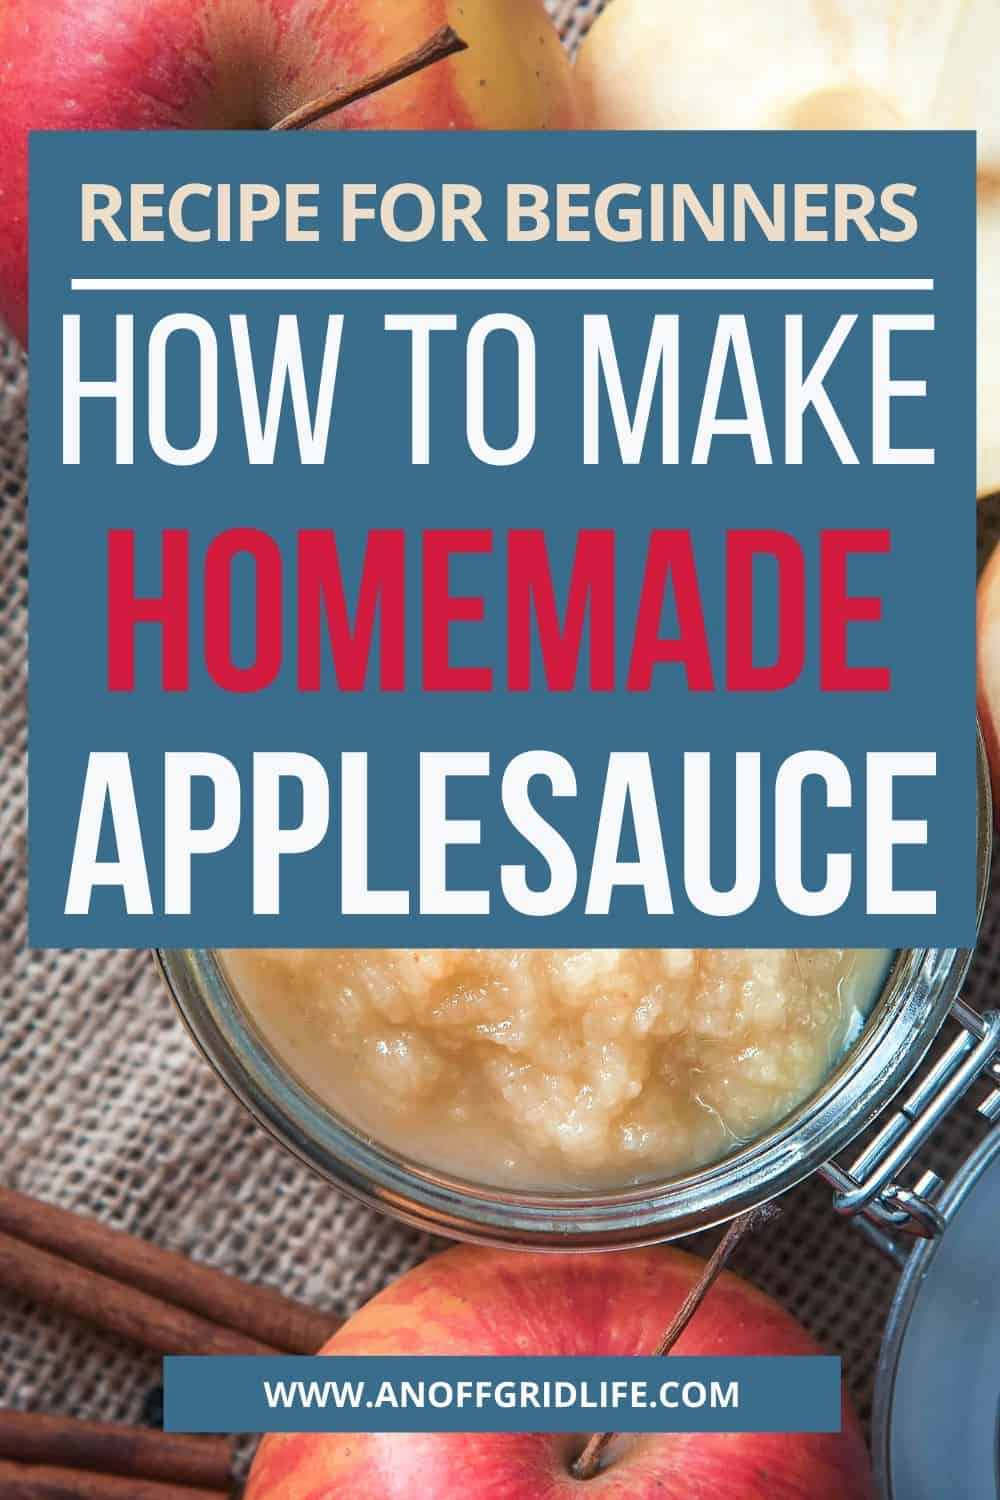 How to Make Homemade Applesauce text overlay on applesauce in mason jar on a wooden tabletop with cinnamon sticks